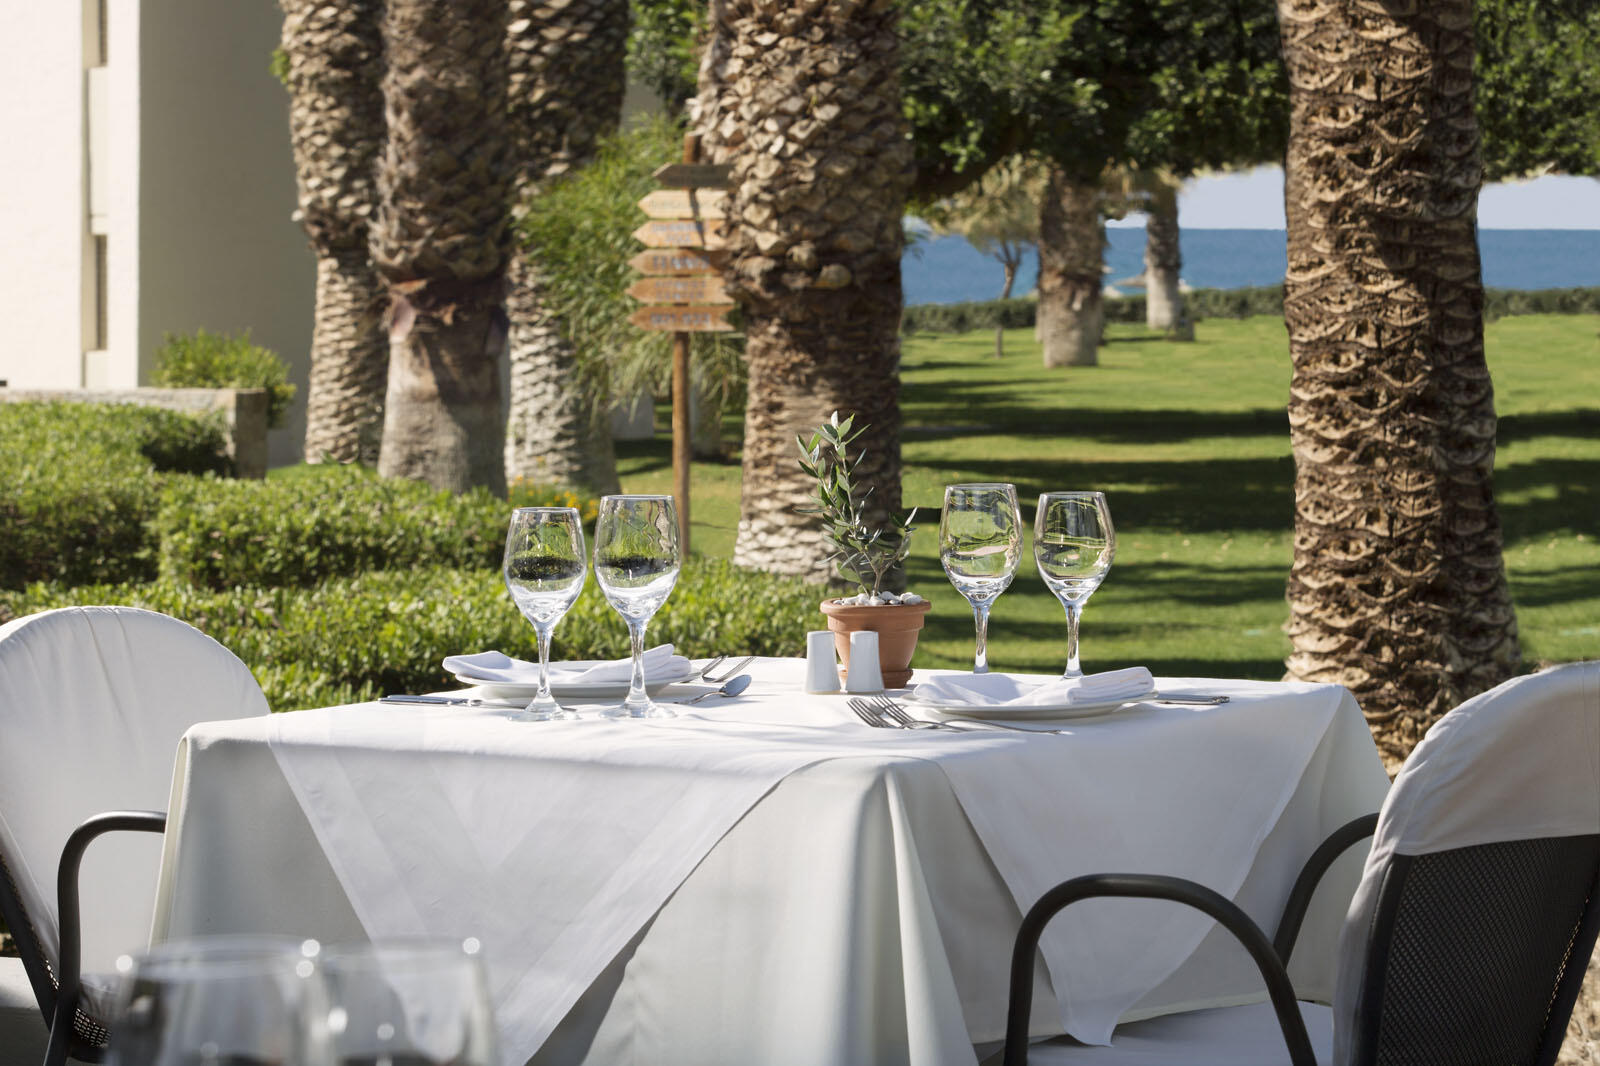 Piazza d'Italia Restaurant at Agapi Beach Resort in Crete